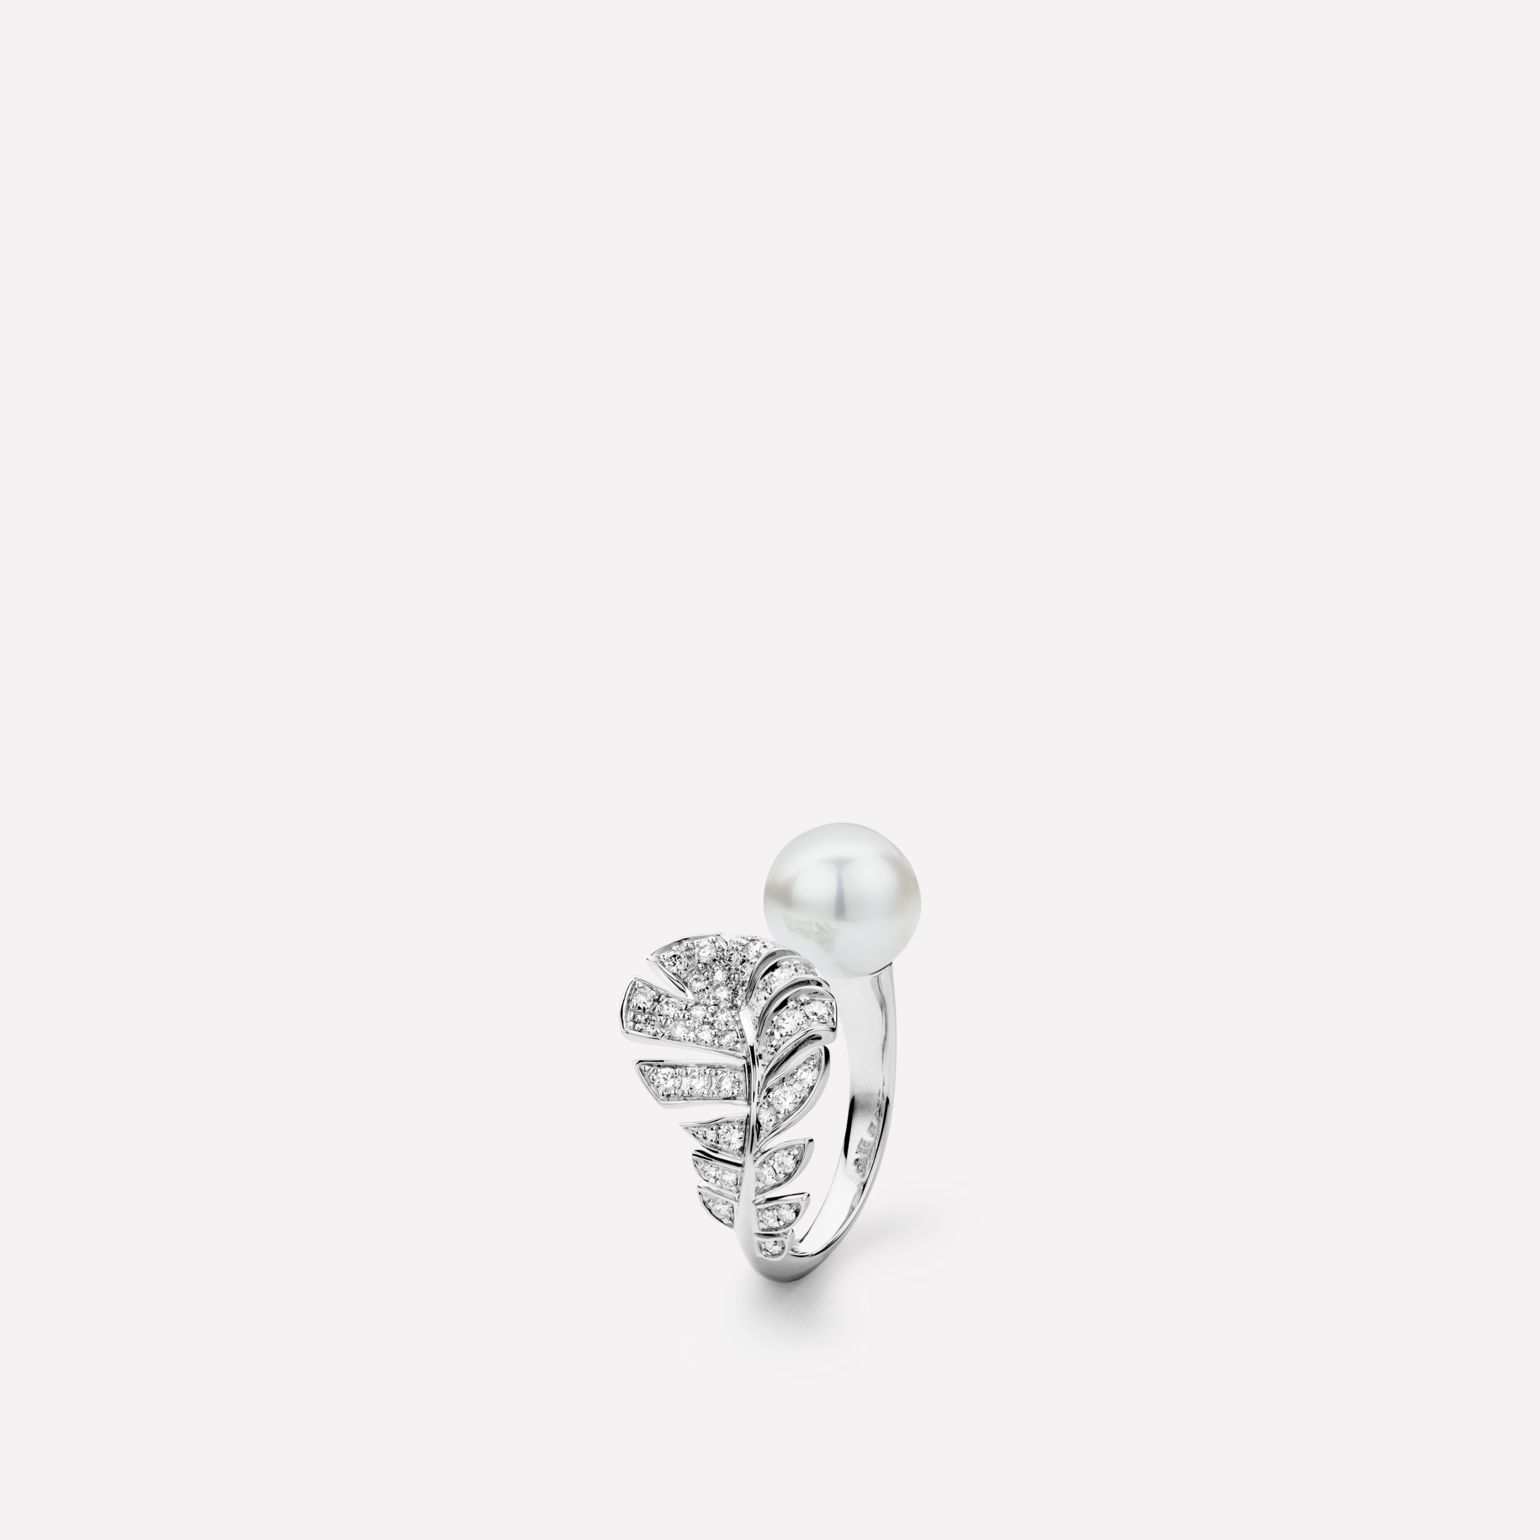 Plume de CHANEL Ring Plume ring in 18K white gold, diamonds and cultured pearl